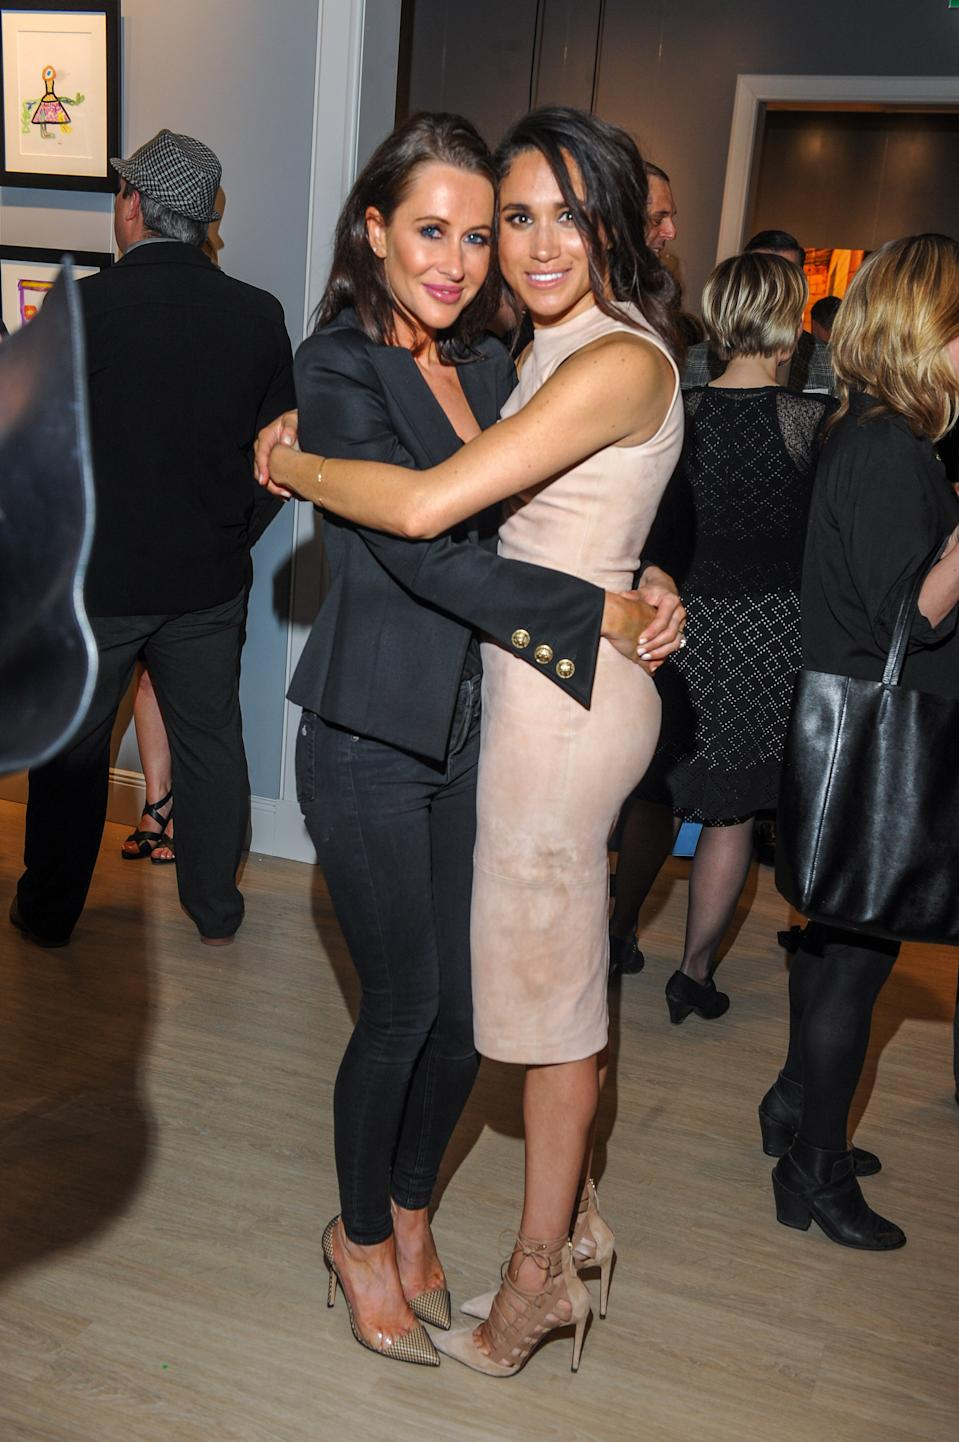 TORONTO, ON - MARCH 22:  Jessica Mulroney and actress Meghan Markle attend the World Vision event held at Lumas Gallery on March 22, 2016 in Toronto, Canada.  (Photo by George Pimentel/WireImage)